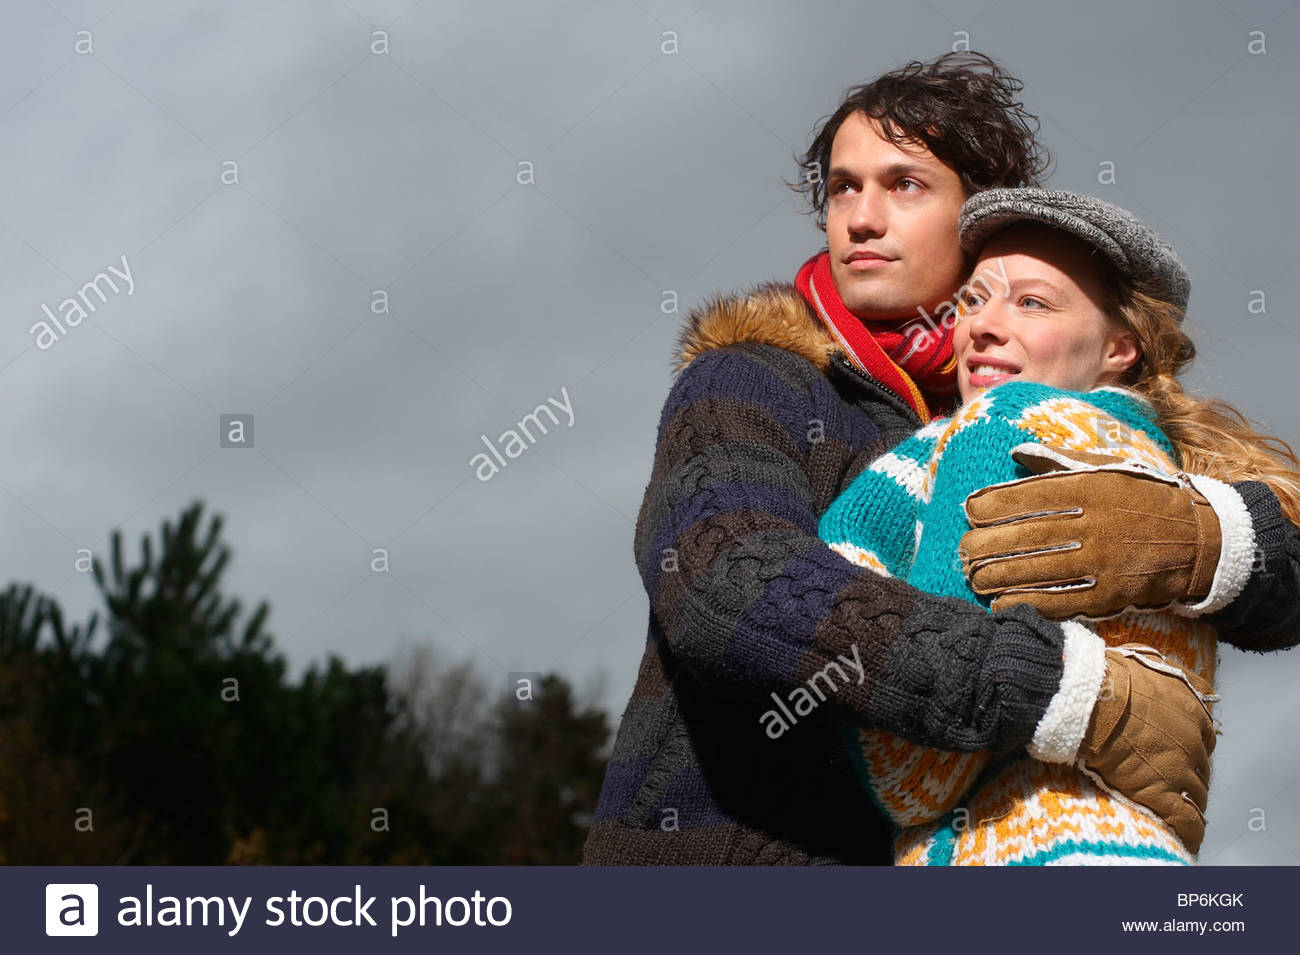 A couple embracing on a cold winters day - Stock Image